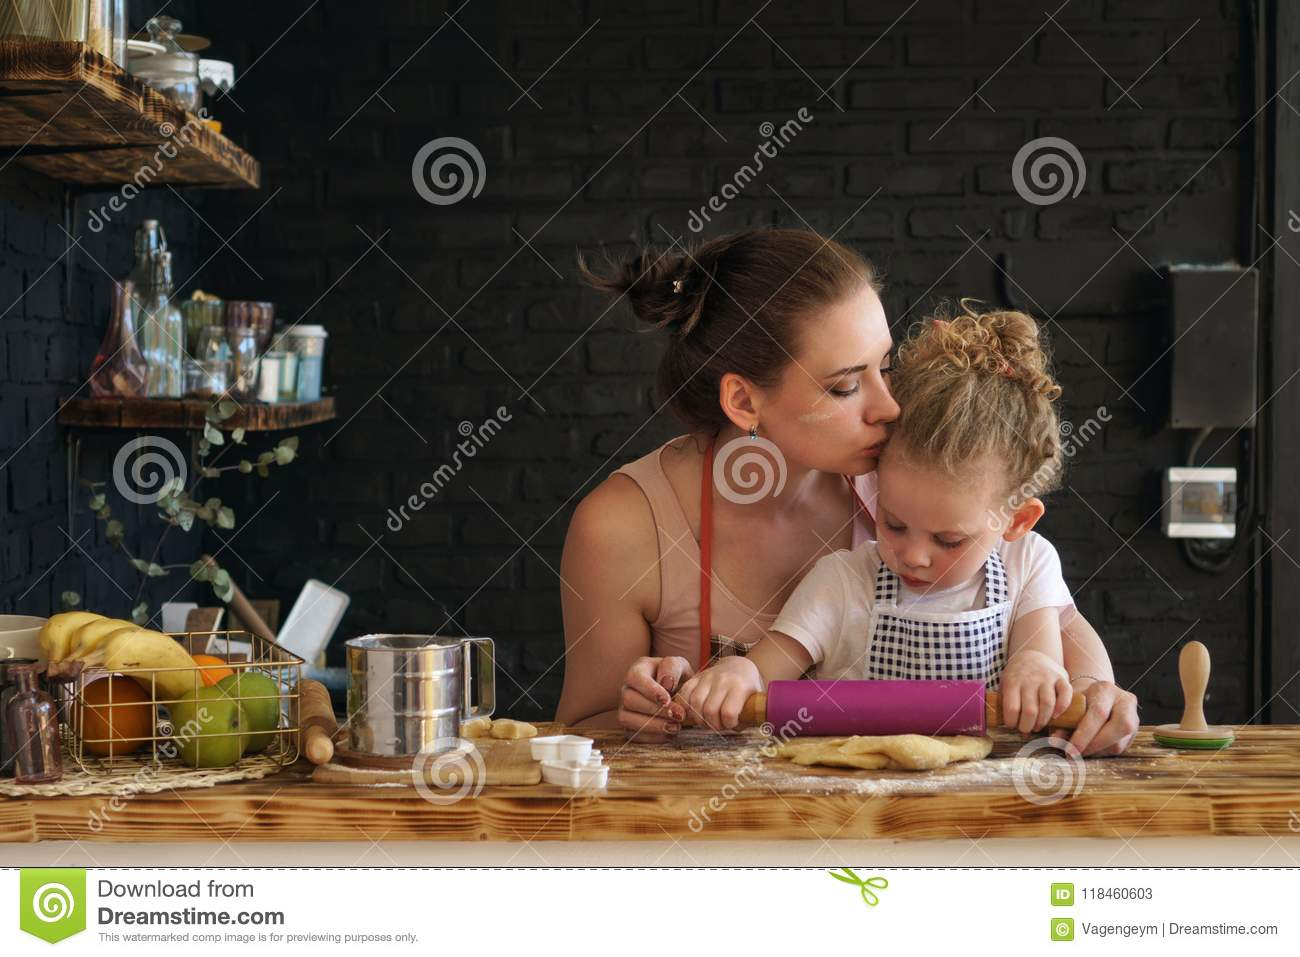 Mother and daughter prepare cookies in kitchen